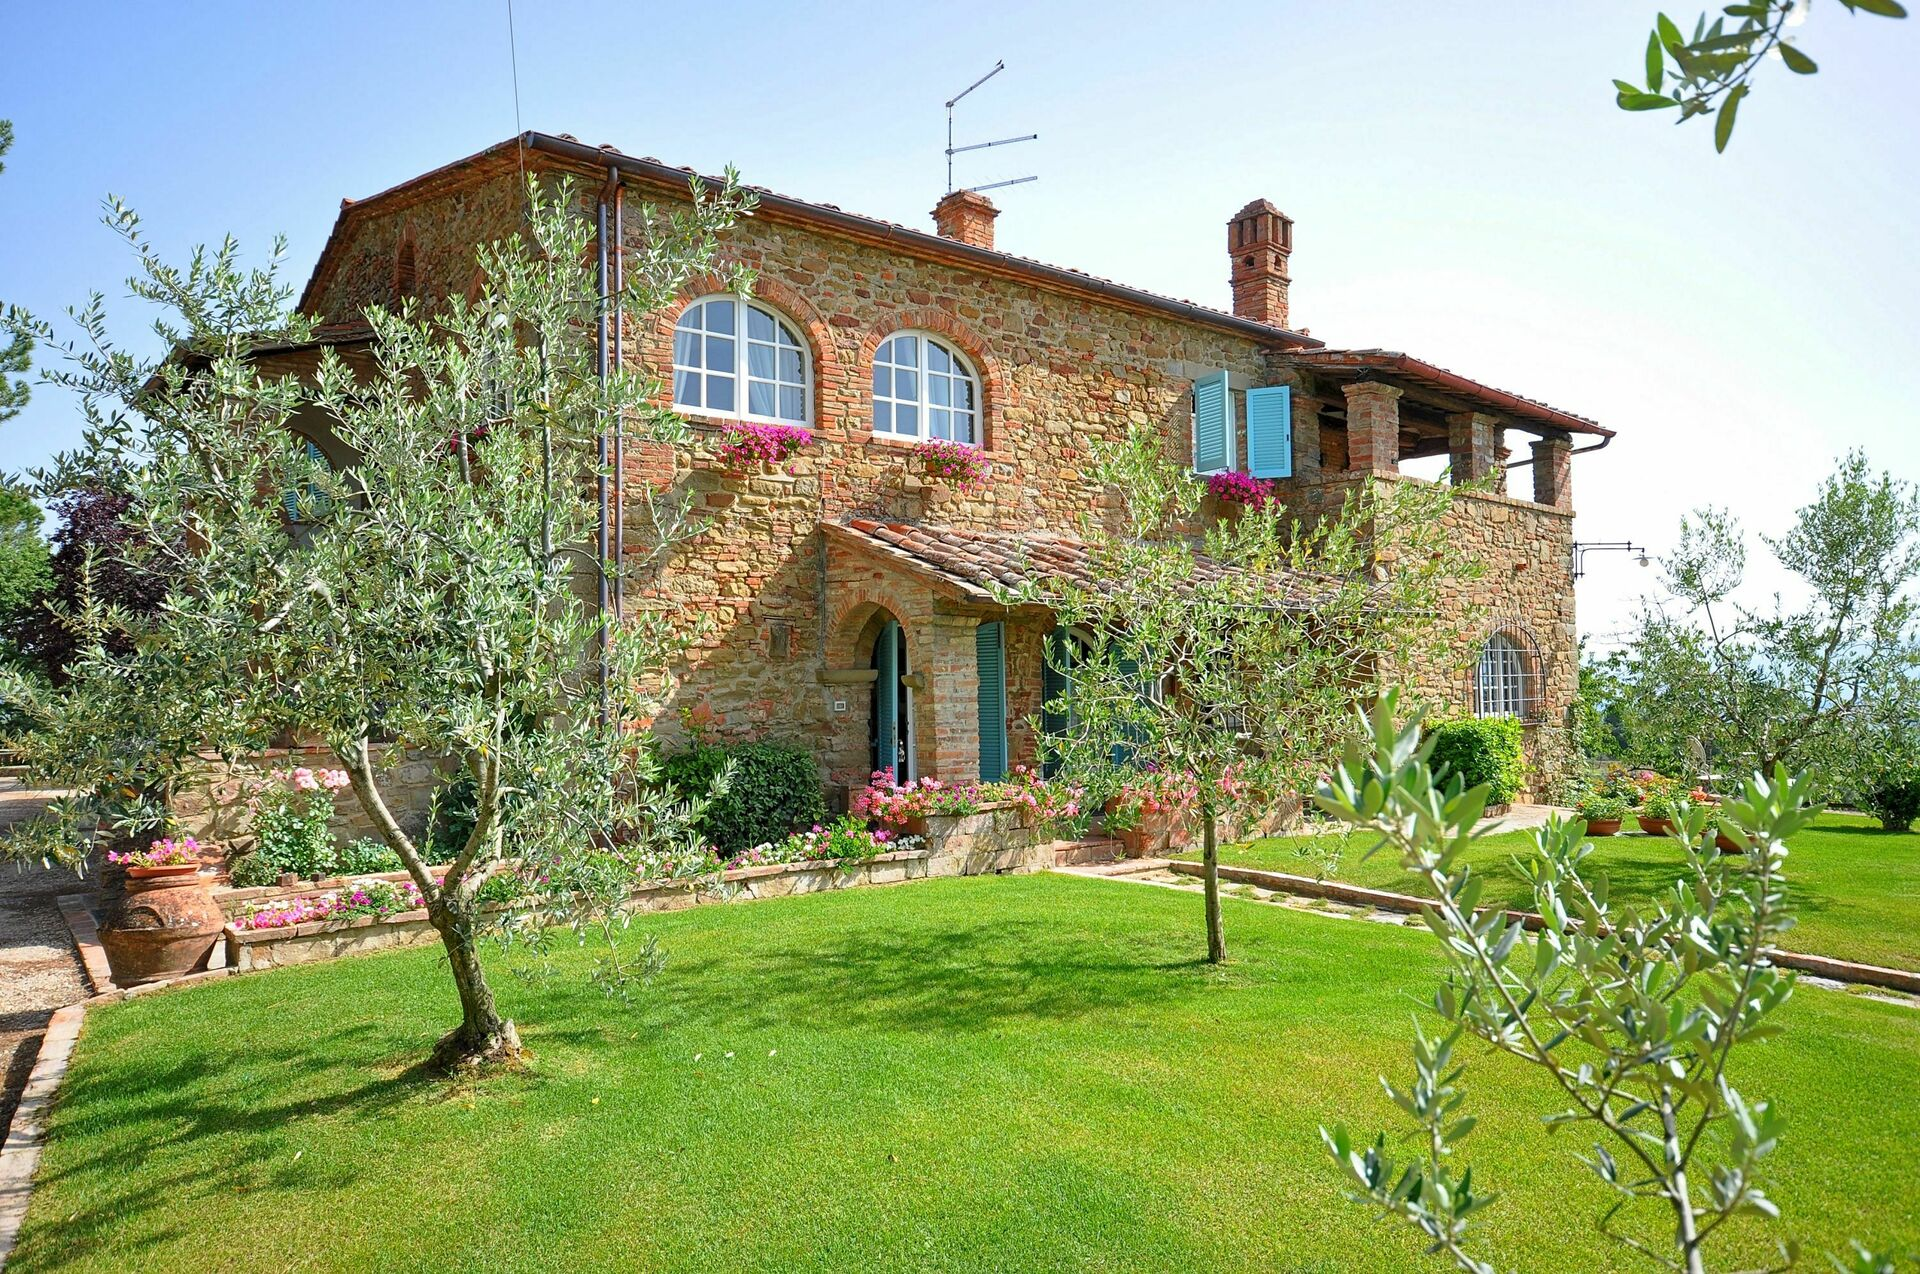 Country house in tuscany for rent villa caterina for Rent a house in tuscany